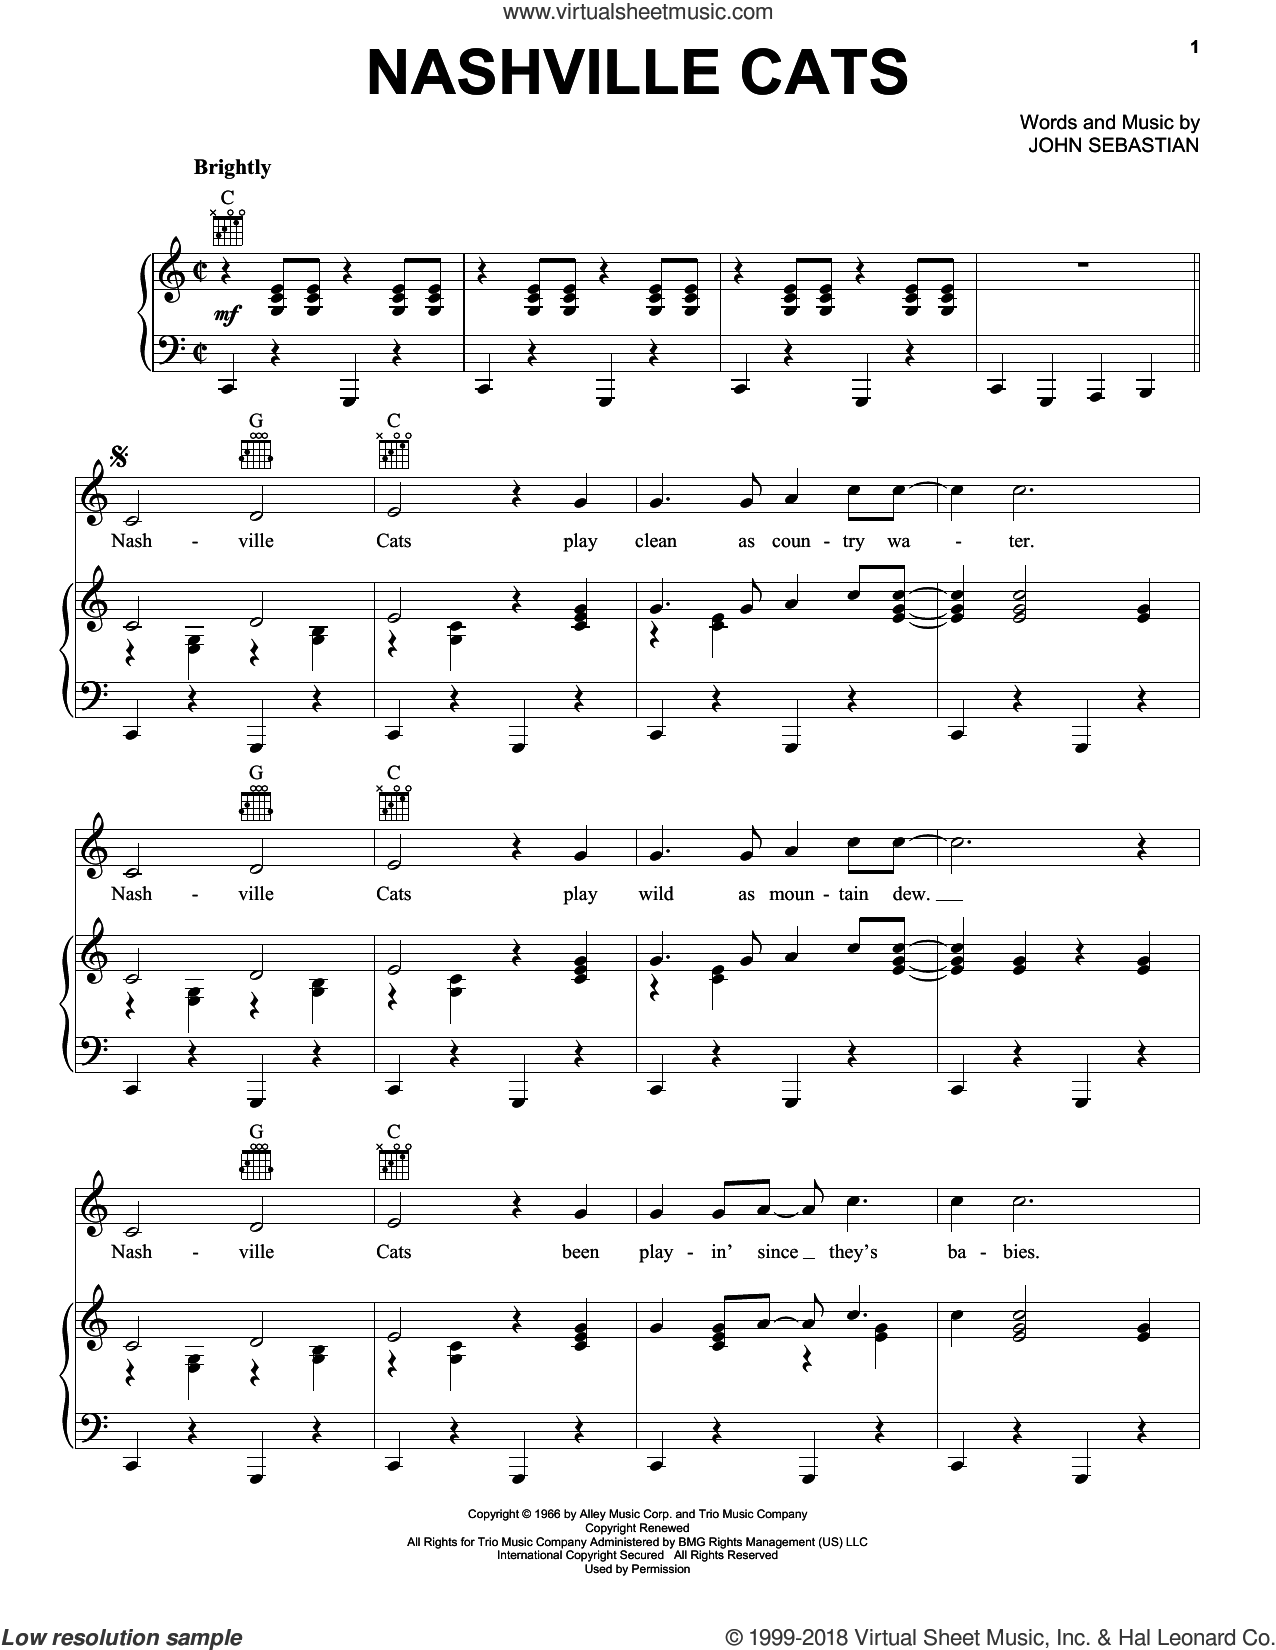 Nashville Cats sheet music for voice, piano or guitar by Lovin' Spoonful and John Sebastian. Score Image Preview.